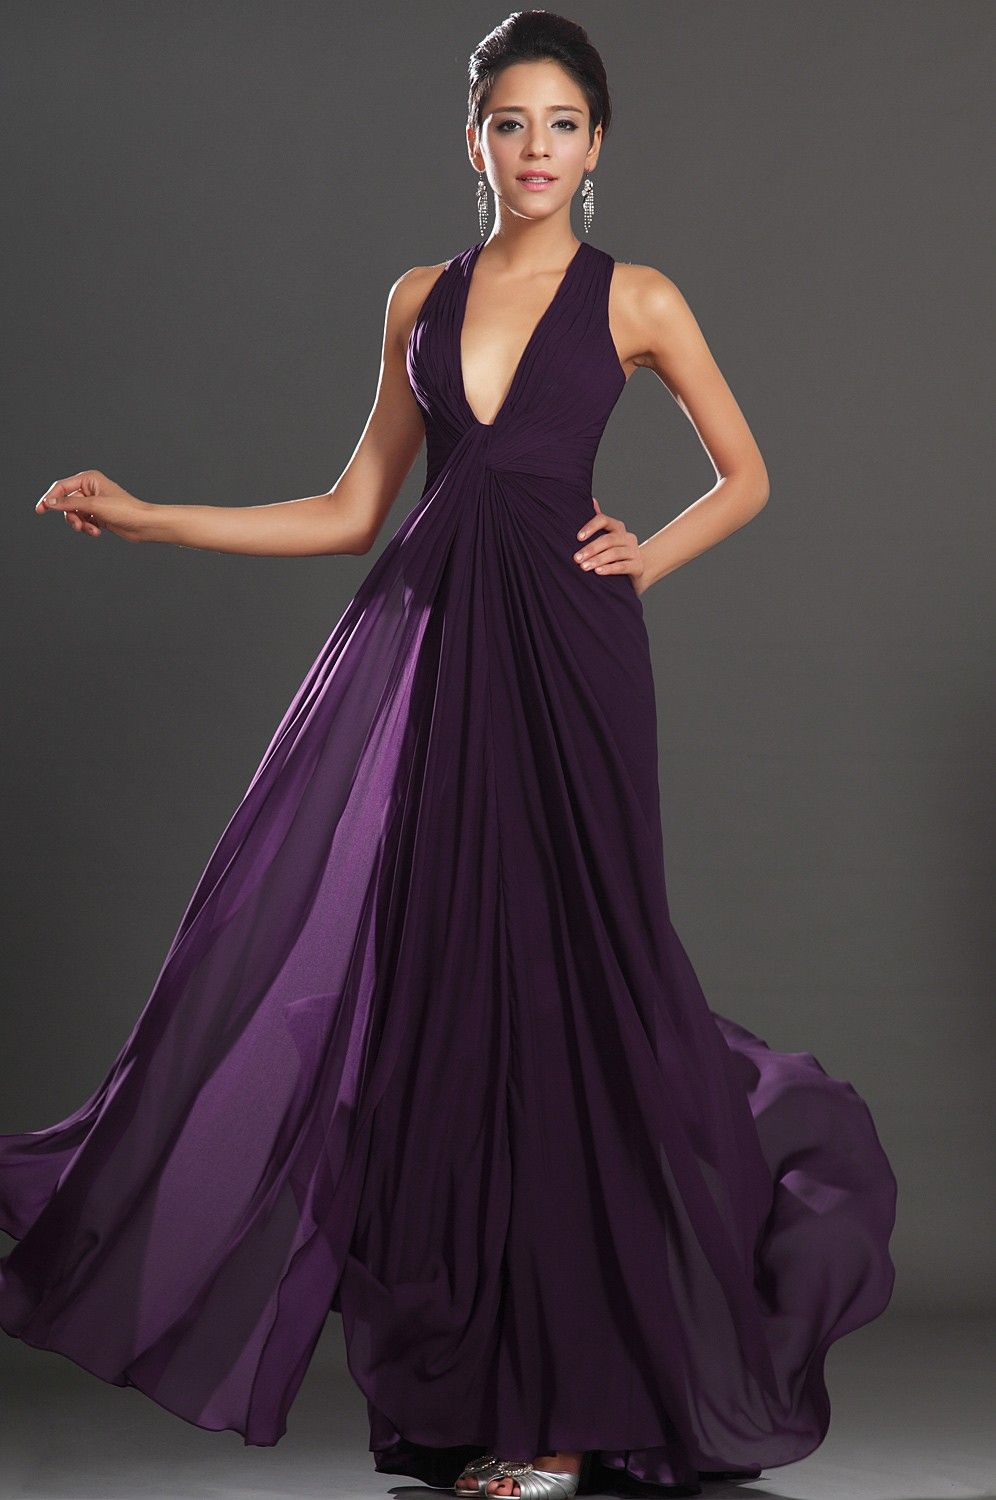 Beautiful-Purple-Evening-Gowns- | Evening Gown | Pinterest ...